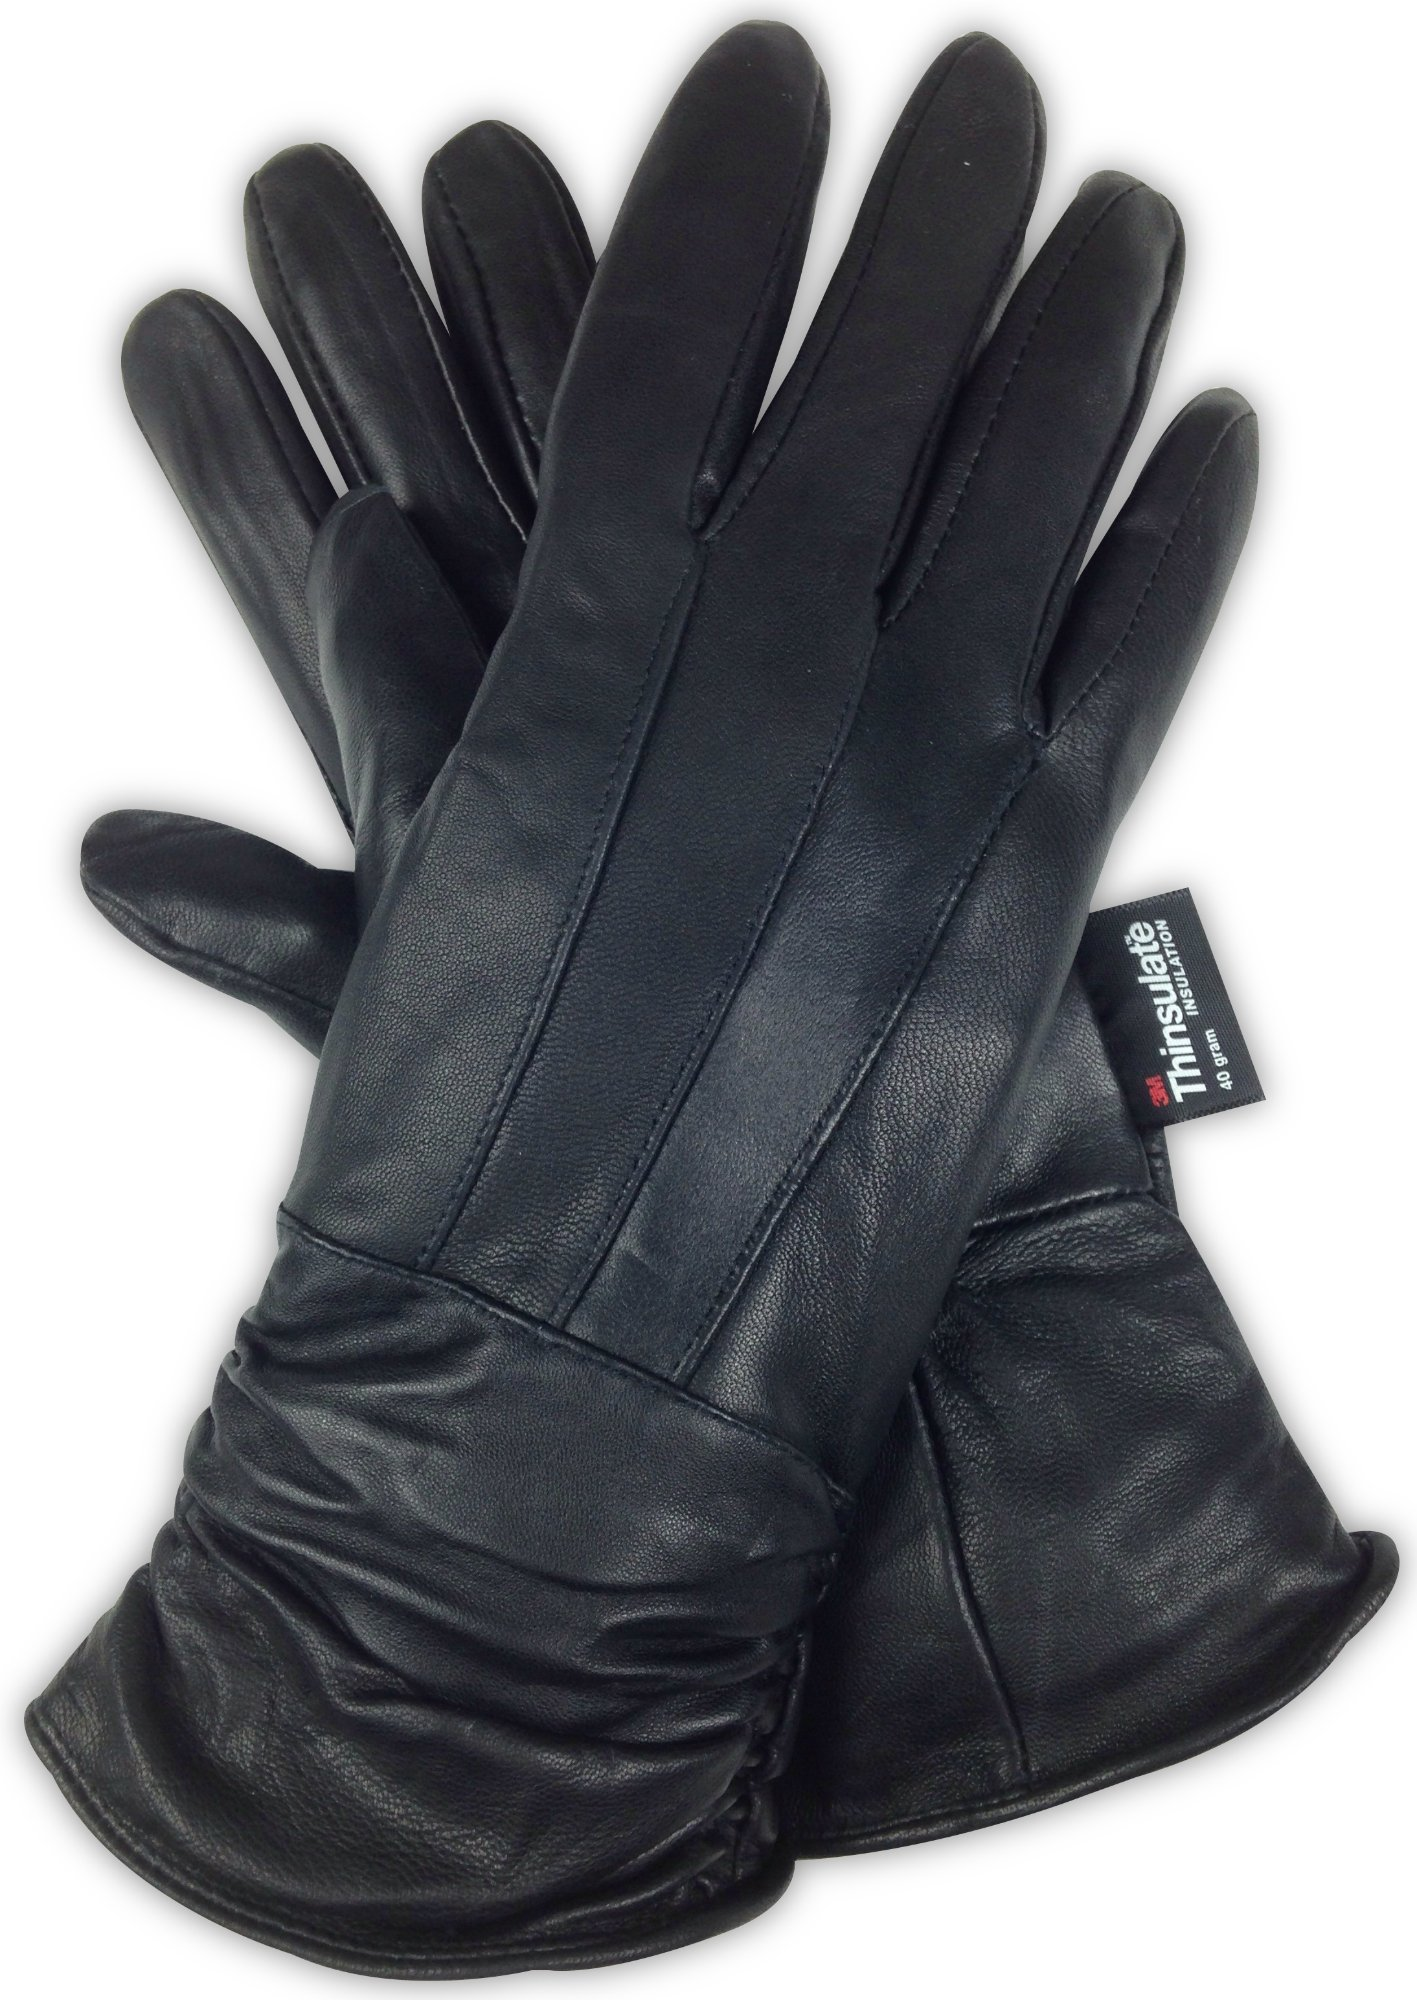 Luxury Soft Women's Leather Gloves – Genuine Nappa Sheepskin Leather with 3M Thinsulate Gloves – Black Ladies Winter Gloves for Dress and Driving (Medium, Classic)